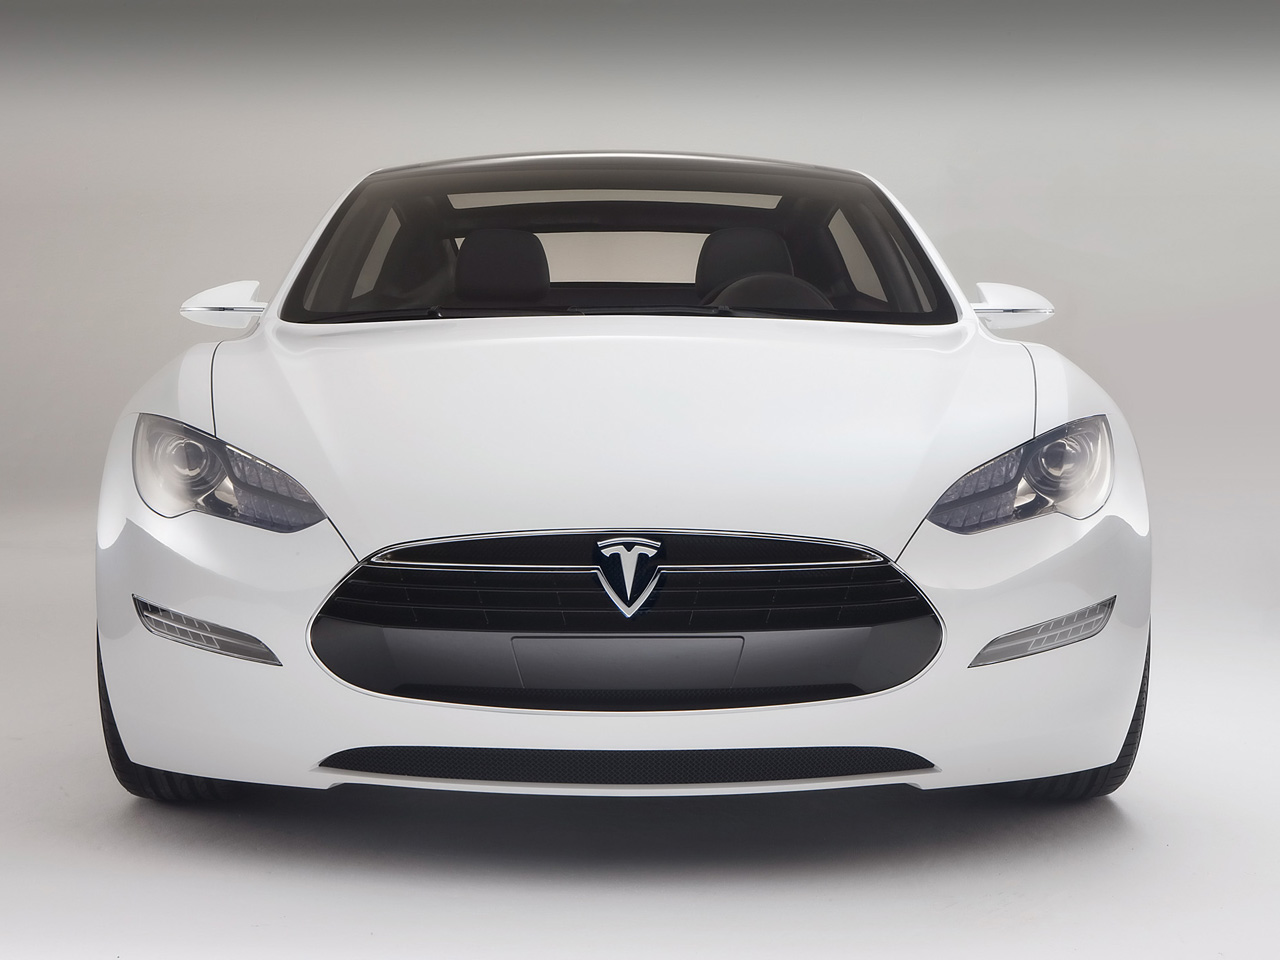 2011 tesla model s features photos price. Black Bedroom Furniture Sets. Home Design Ideas